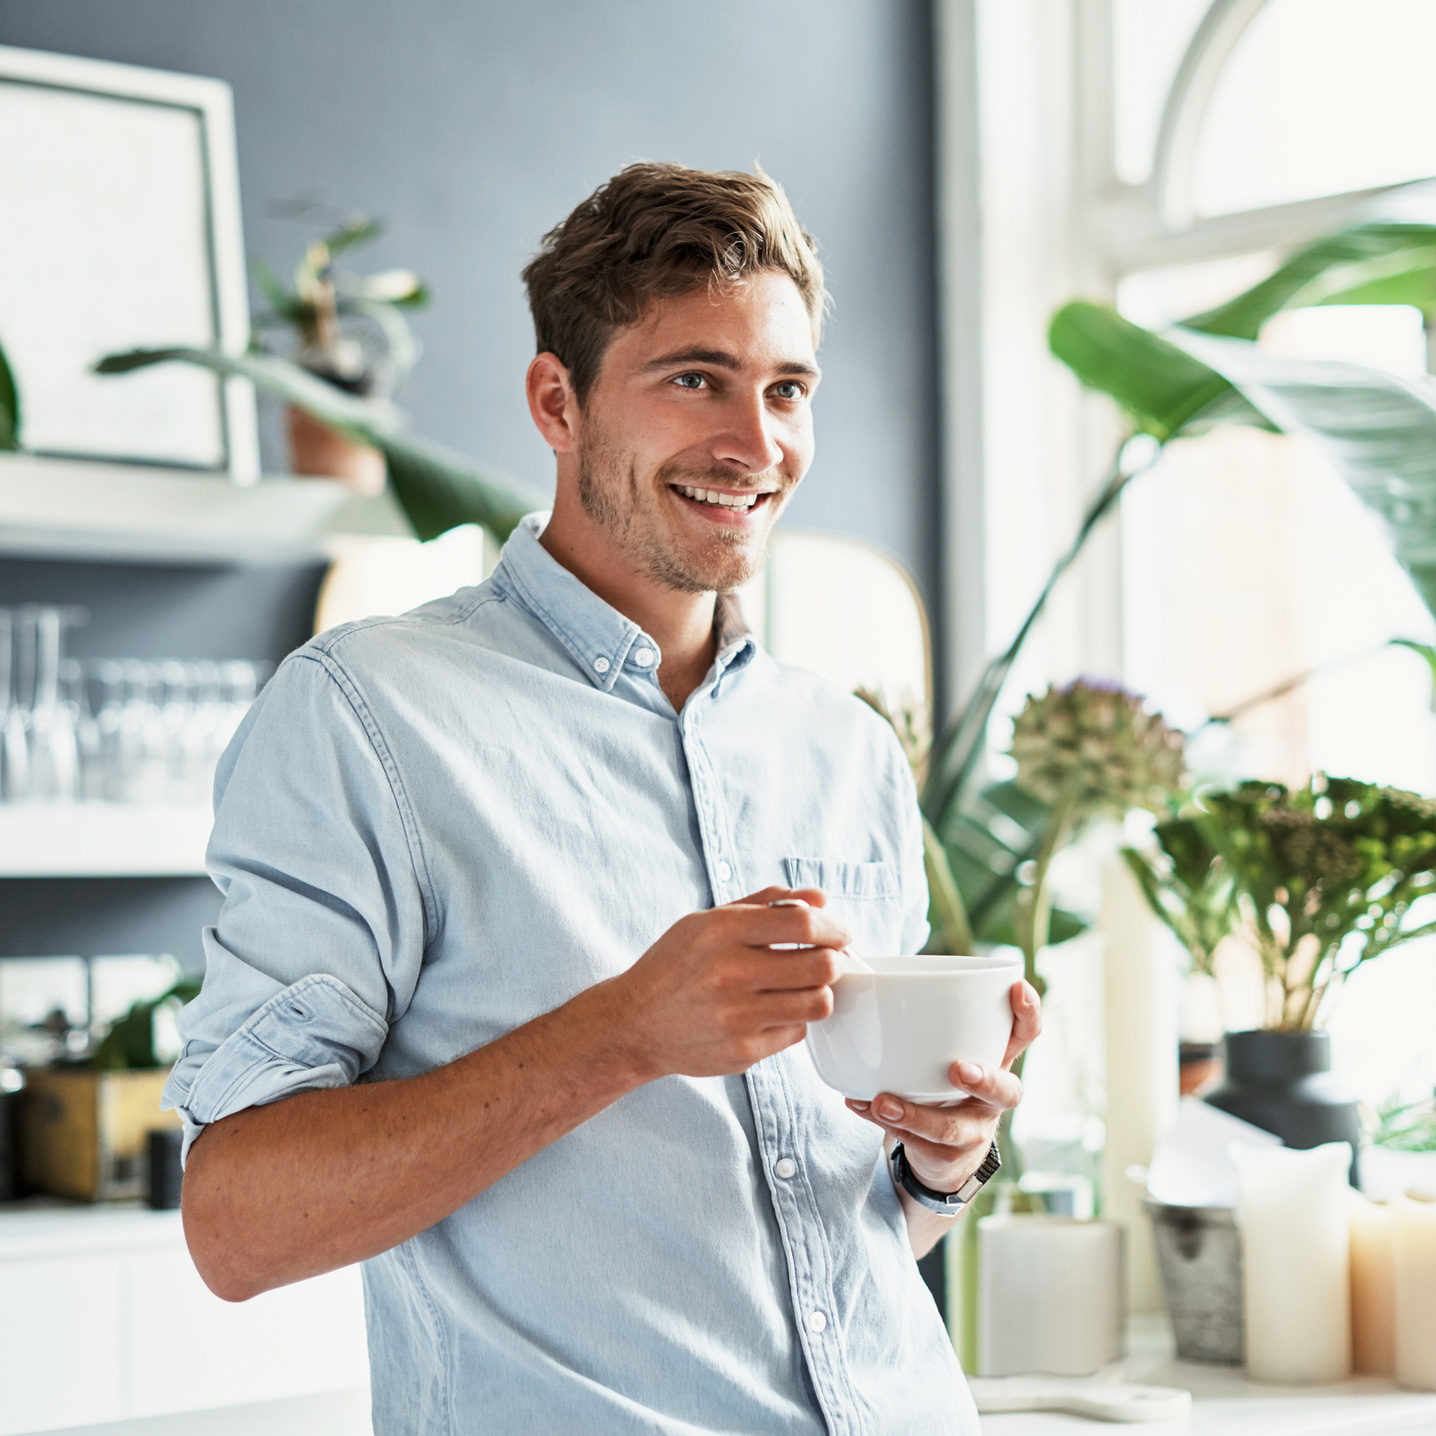 man Eating healthy and feeling great